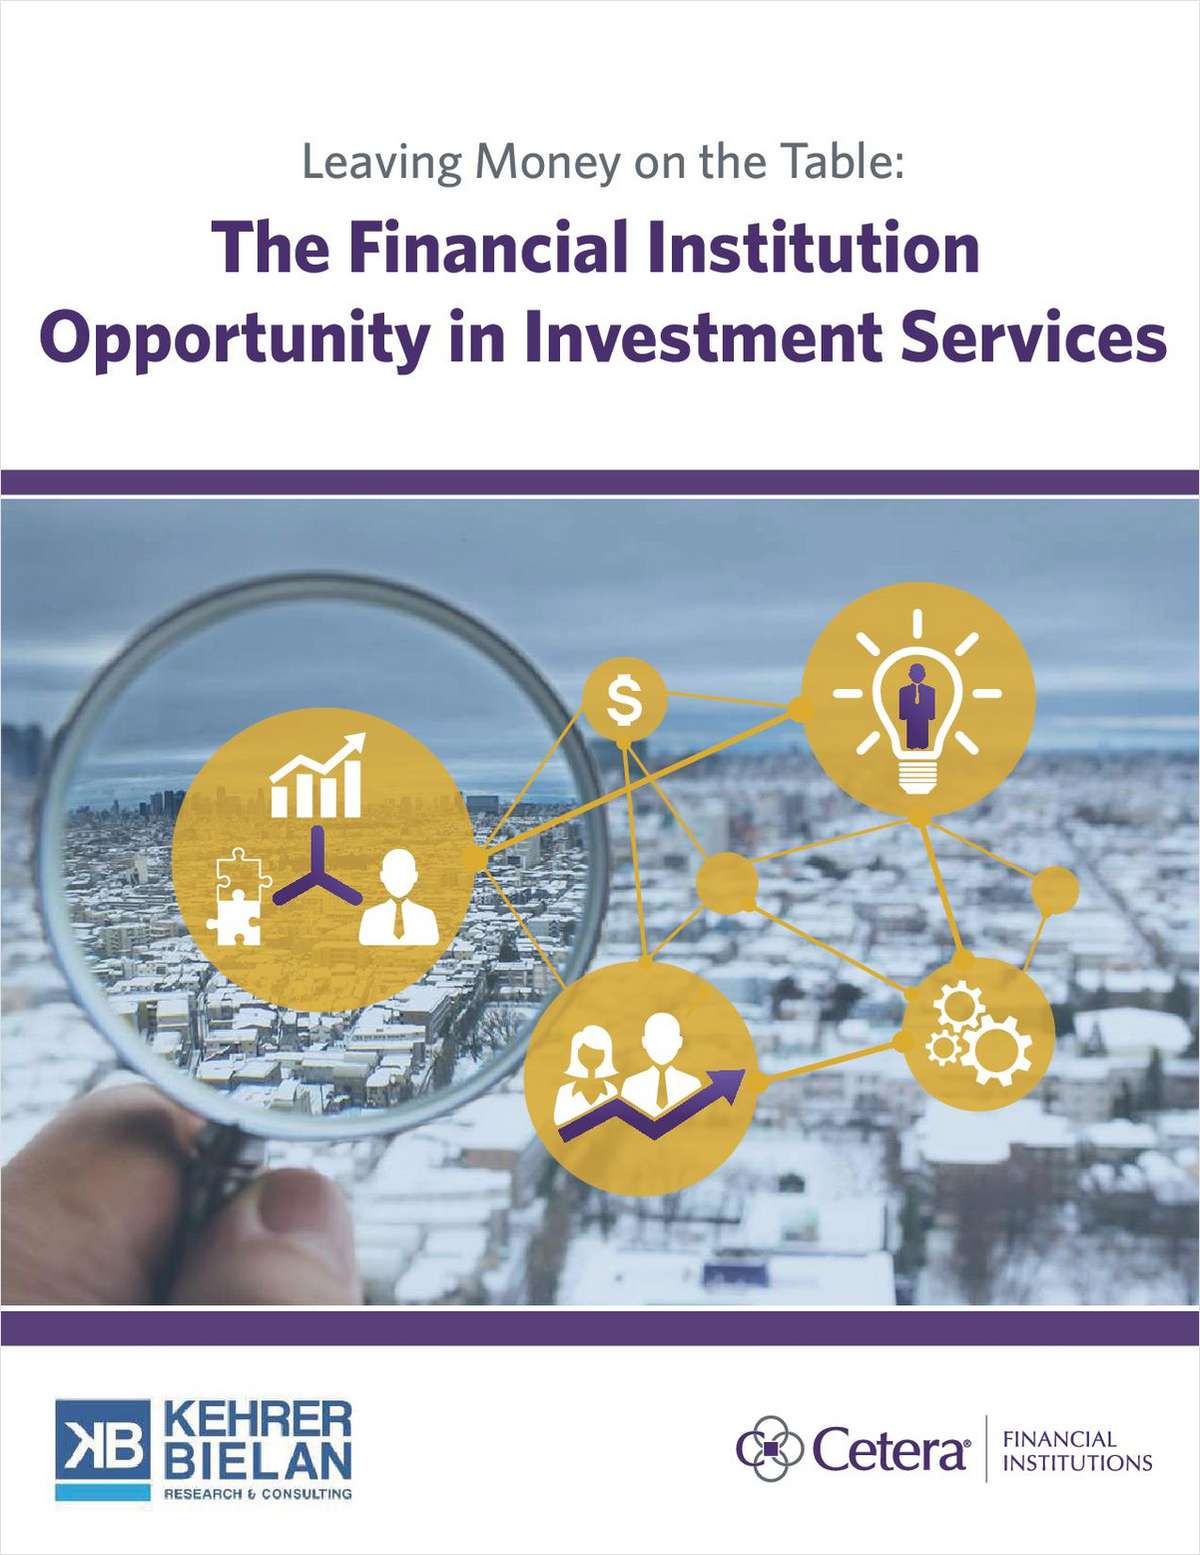 Leaving Money on the Table: A Financial Institution's Opportunity in Investment Services